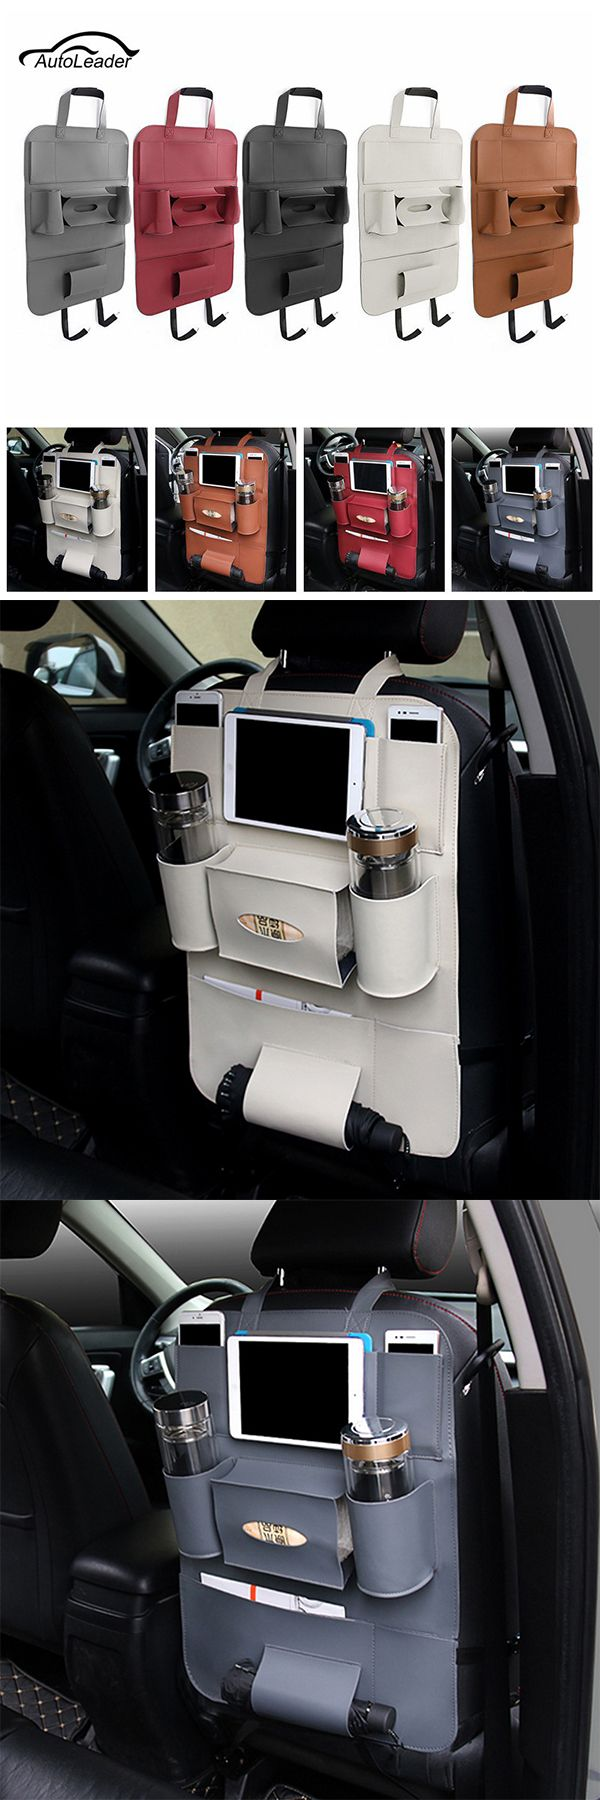 US$14.61 Multifunctional Pocket Car Backseat Phone Holder PU Leather Seat Organizer Storage for Phone Tablet